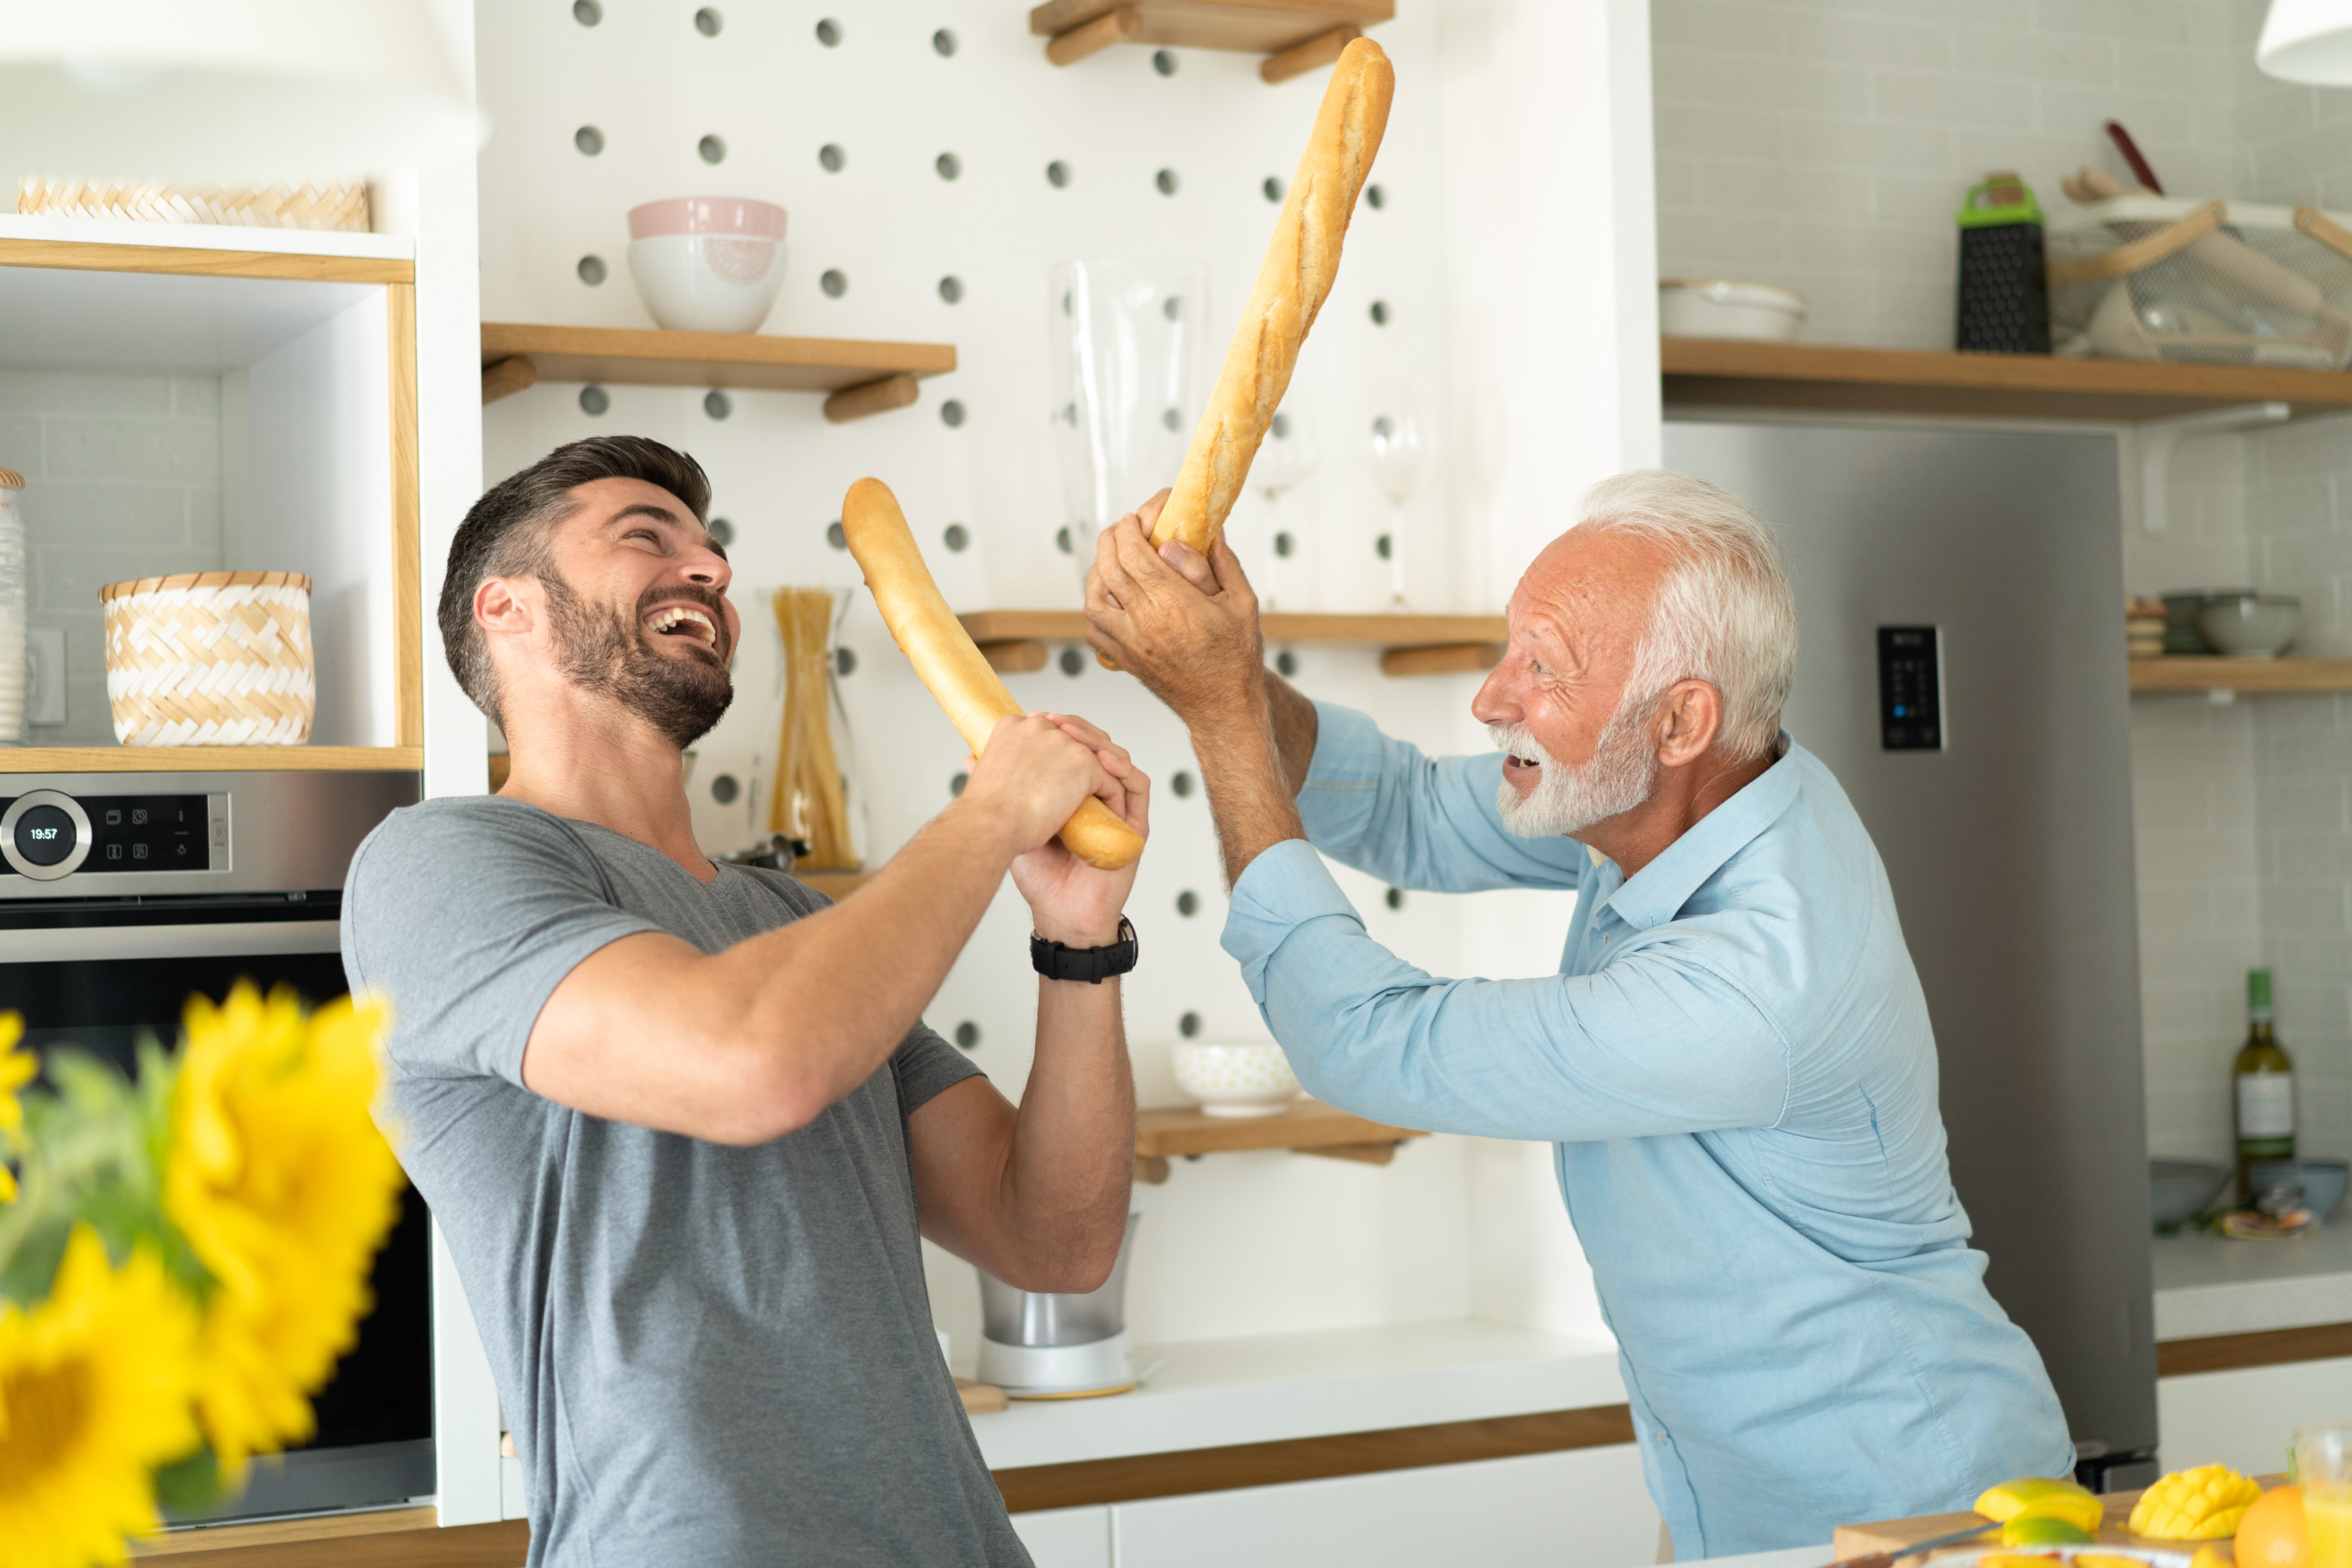 A man and his senior father play fighting with baguettes in a kitchen